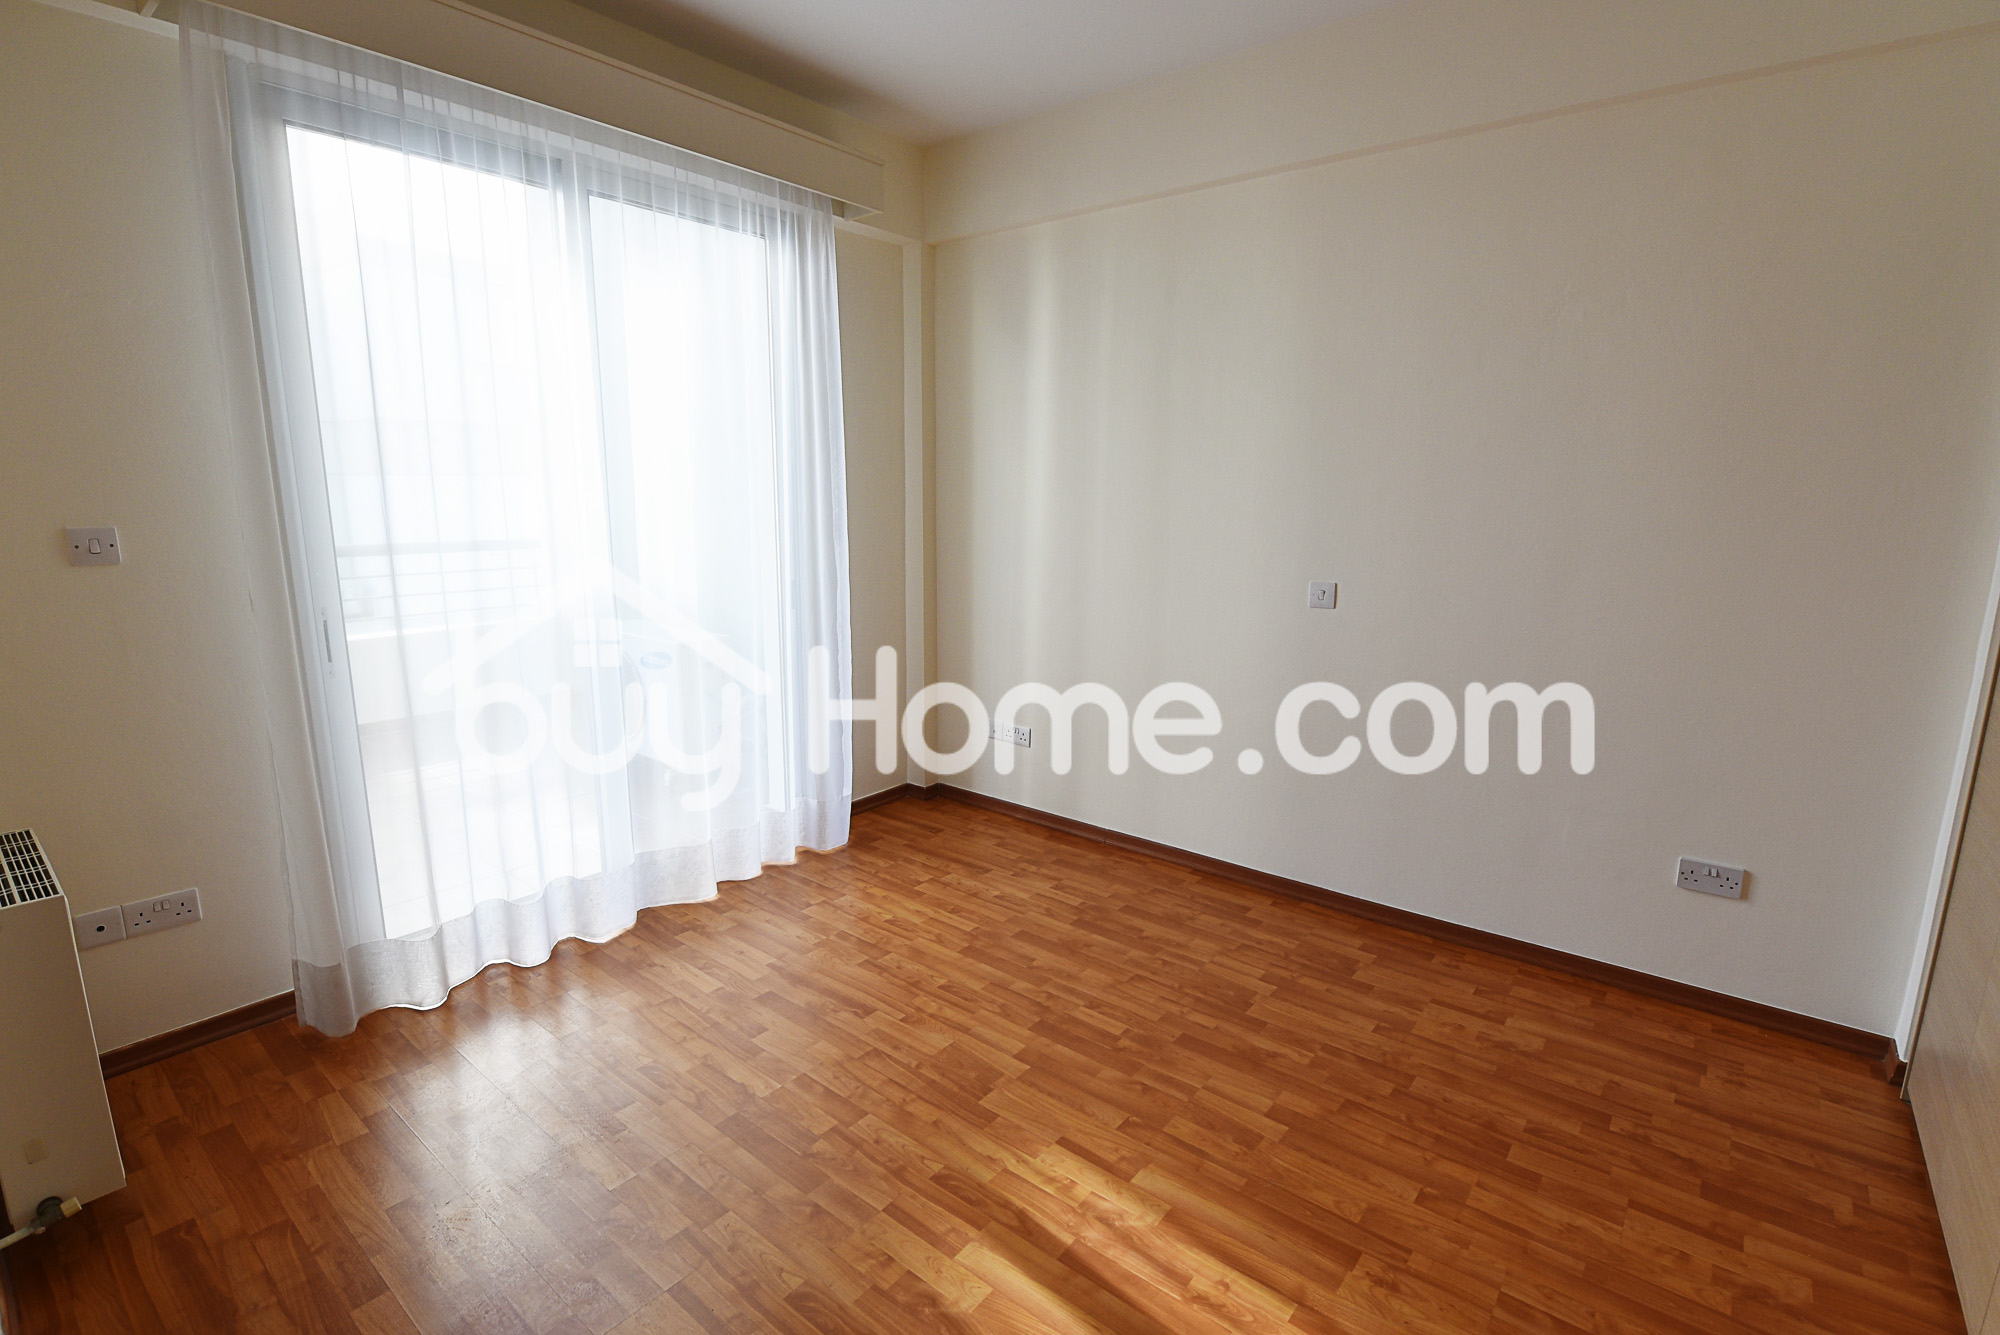 3 Bedroom Apartment | BuyHome